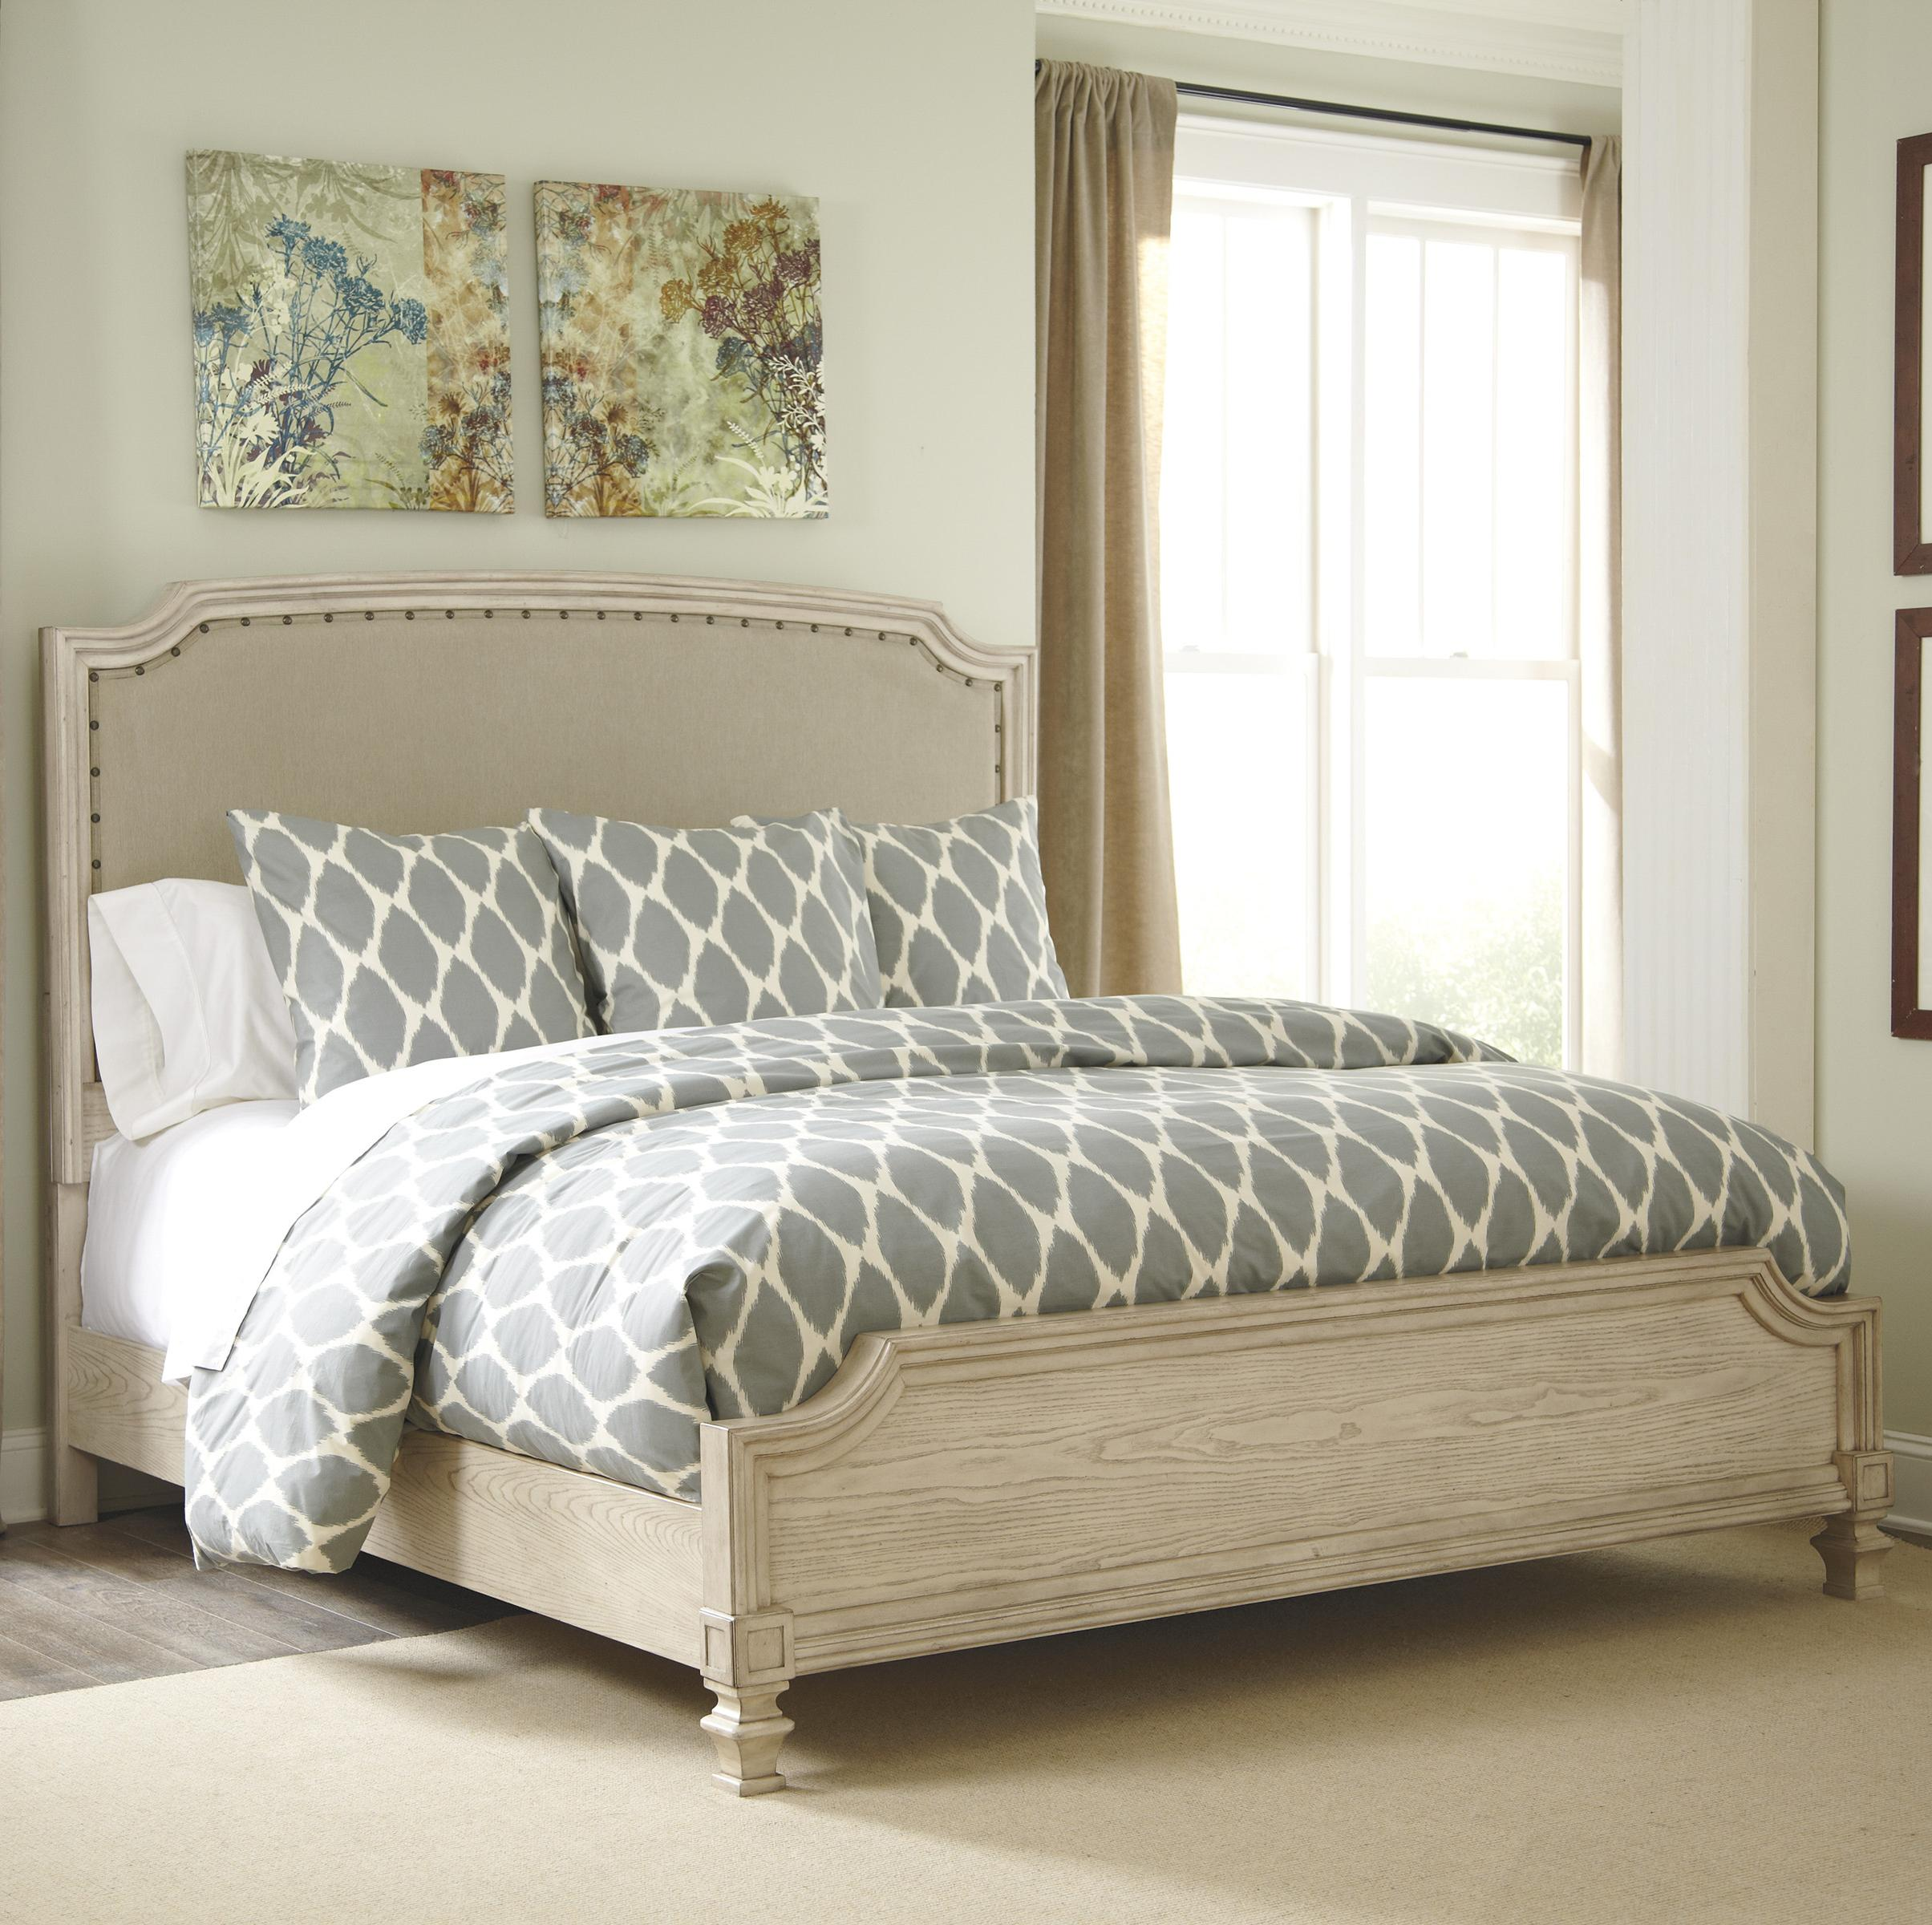 Signature Design By Ashley Demarlos King Upholstered Panel Bed Miskelly Furniture Panel Beds